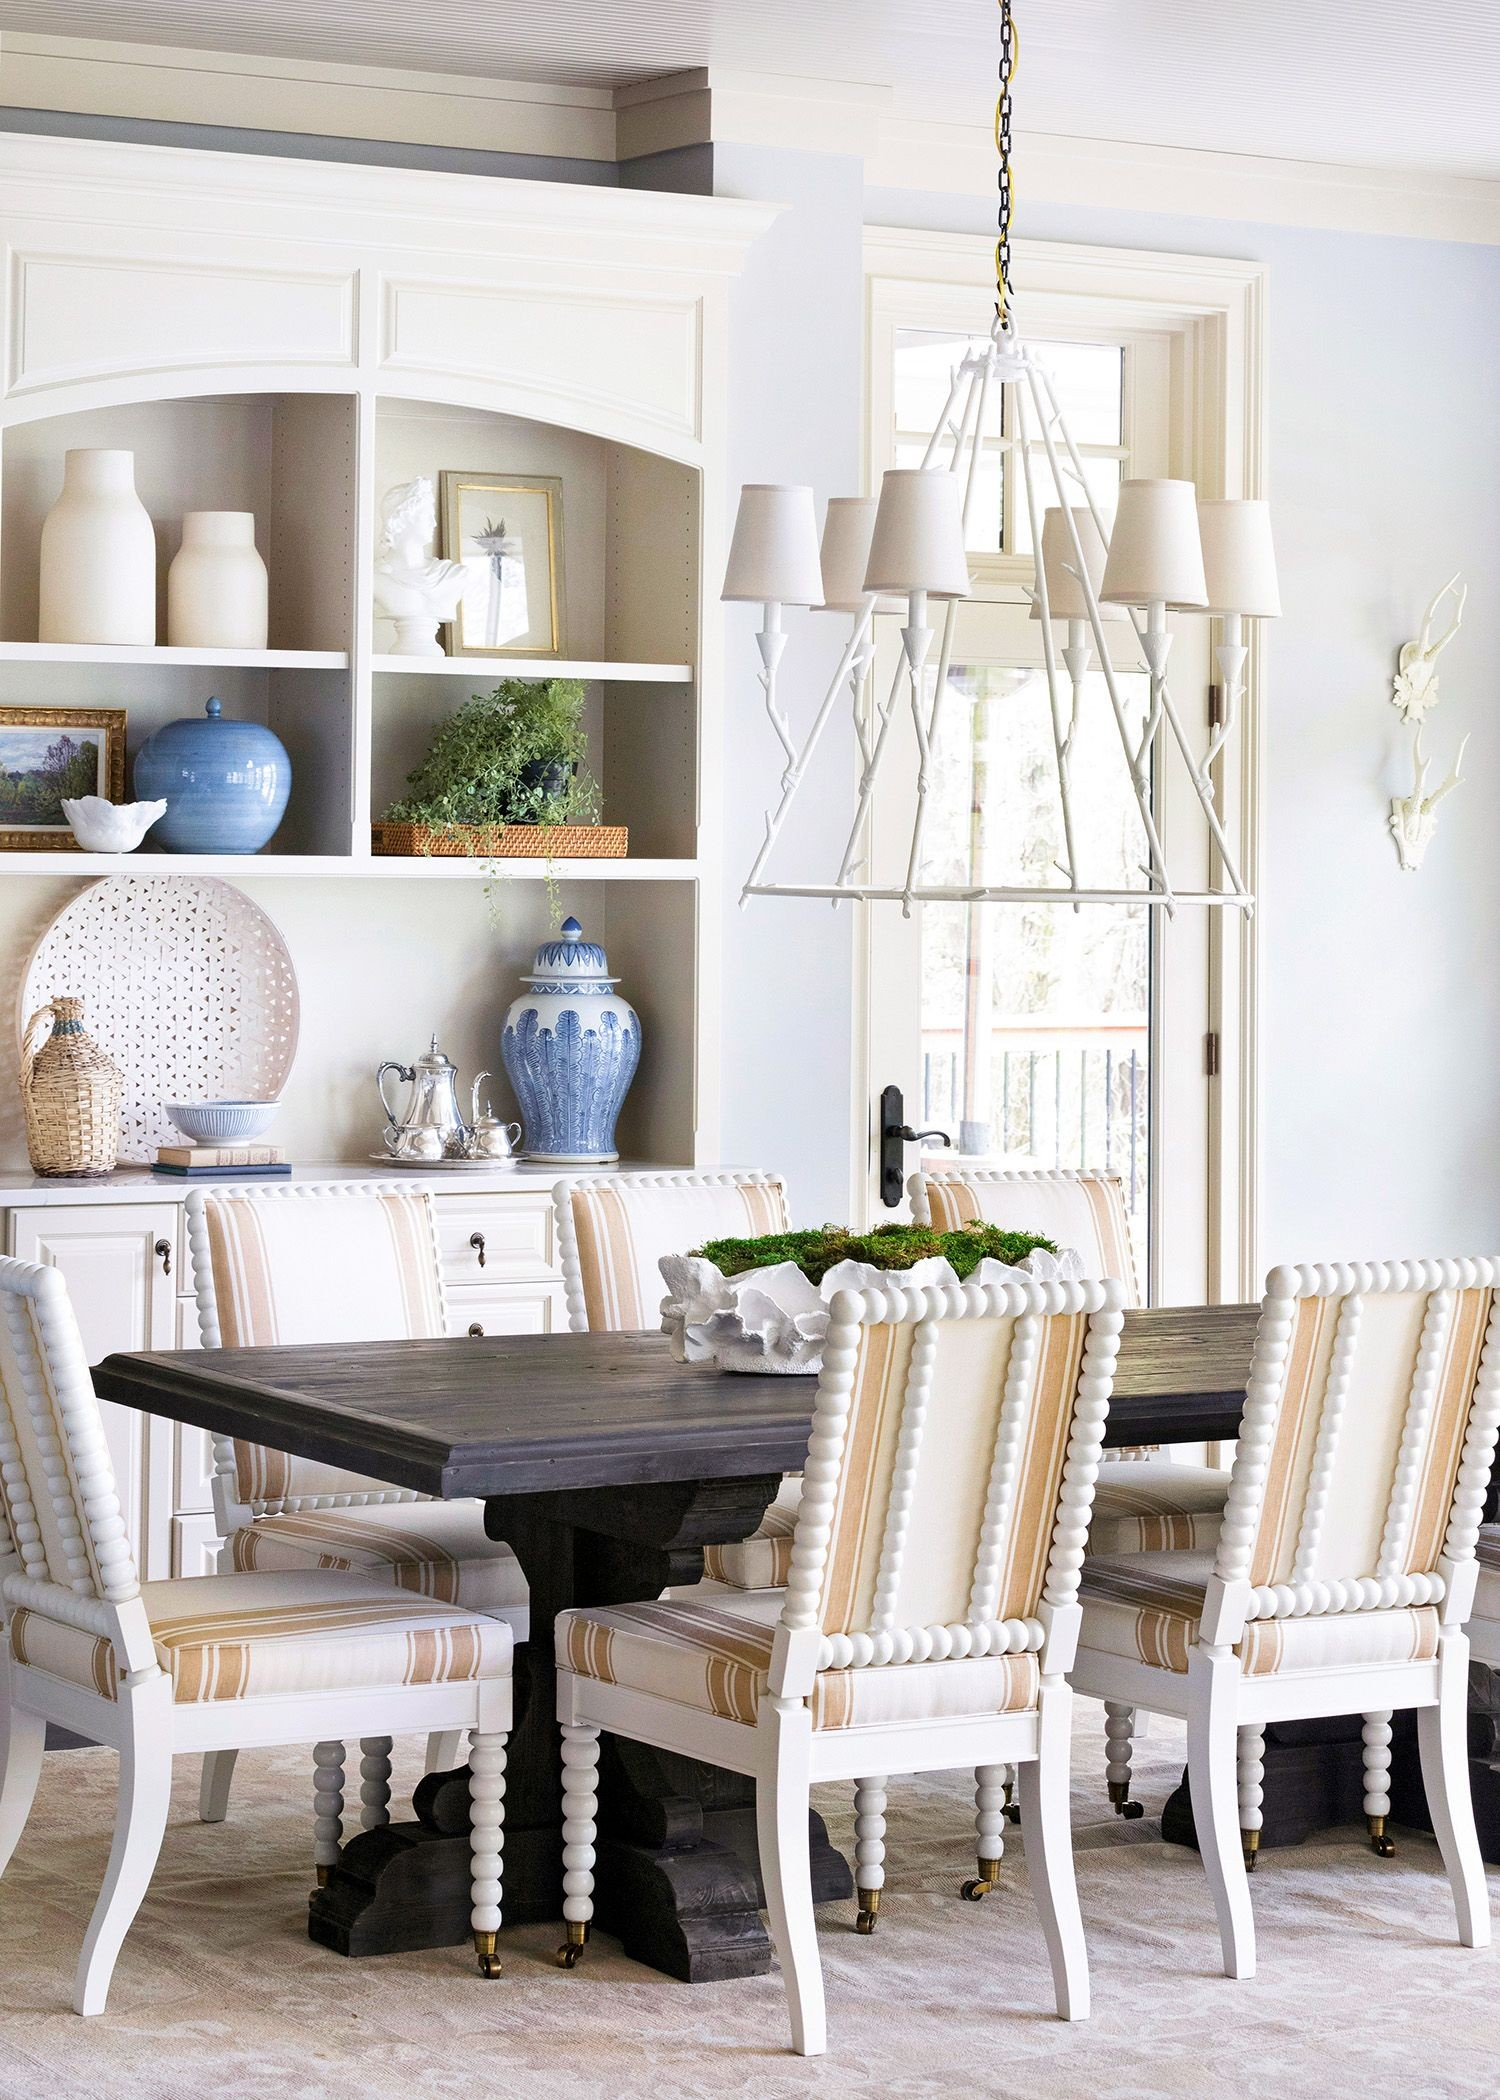 Home Decor Ideas to Consider for an Improved and Cozy Interior 5 home decor ideas Home Decor Ideas to Consider for an Improved and Cozy Interior Home Decor Ideas to Consider for an Improved and Cozy Interior 5